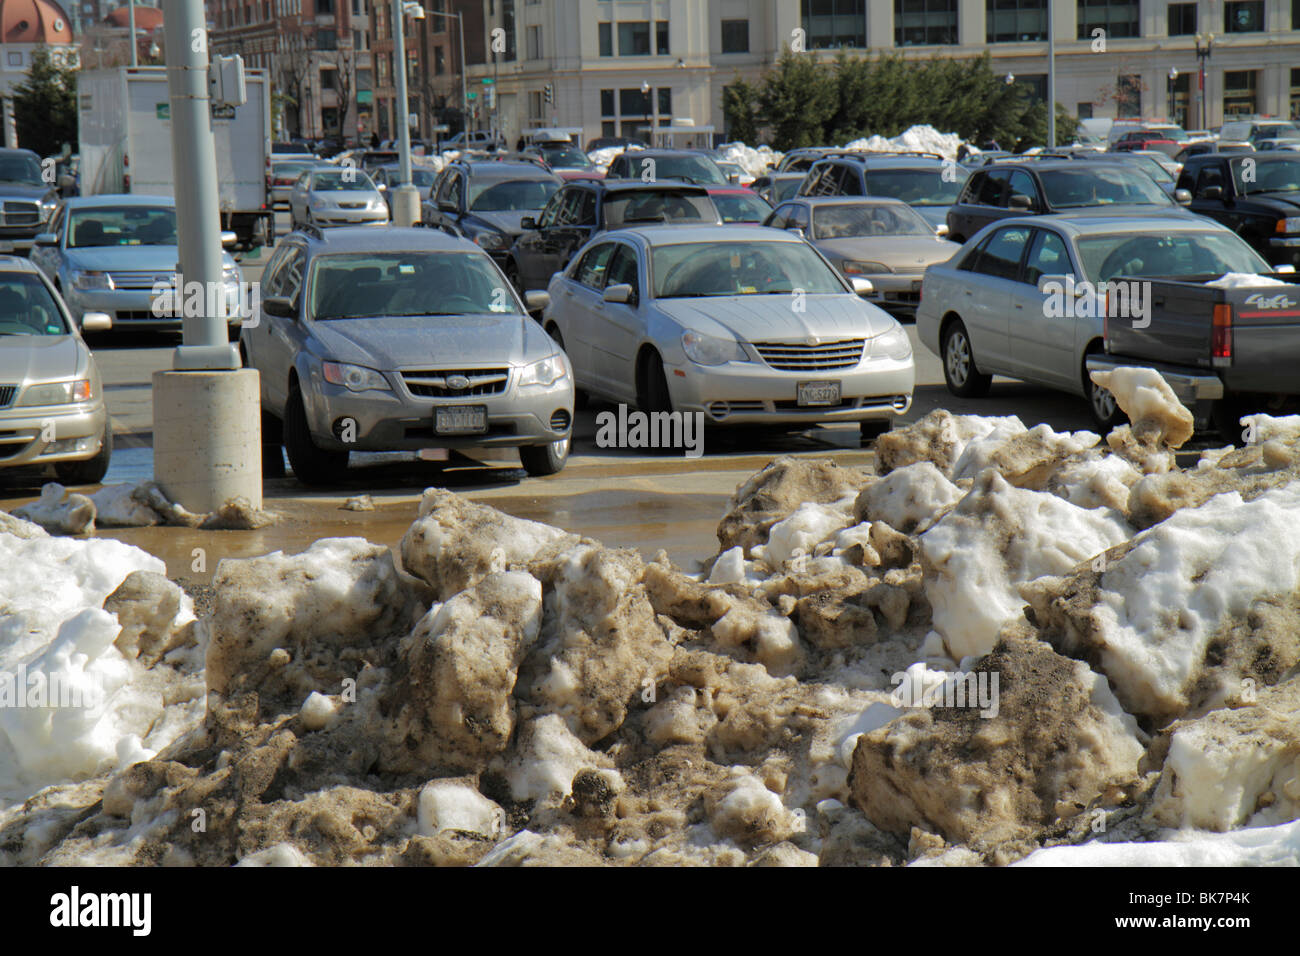 Washington DC 10th Street NW dirty grimy snow plowed ice thawing melting wet pollution winter cold weather parking - Stock Image